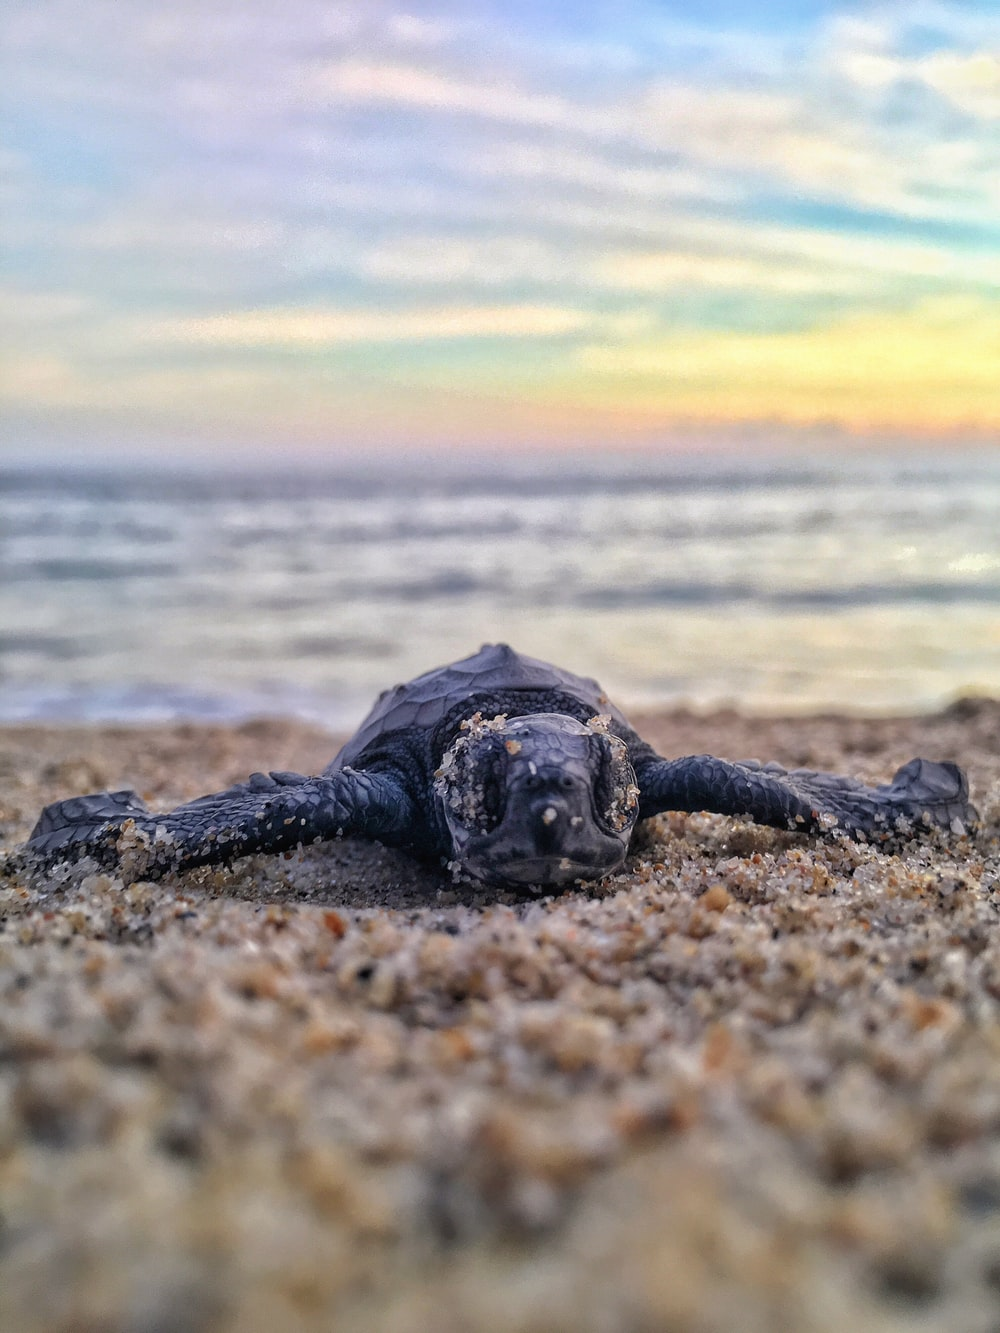 black turtle on seashore